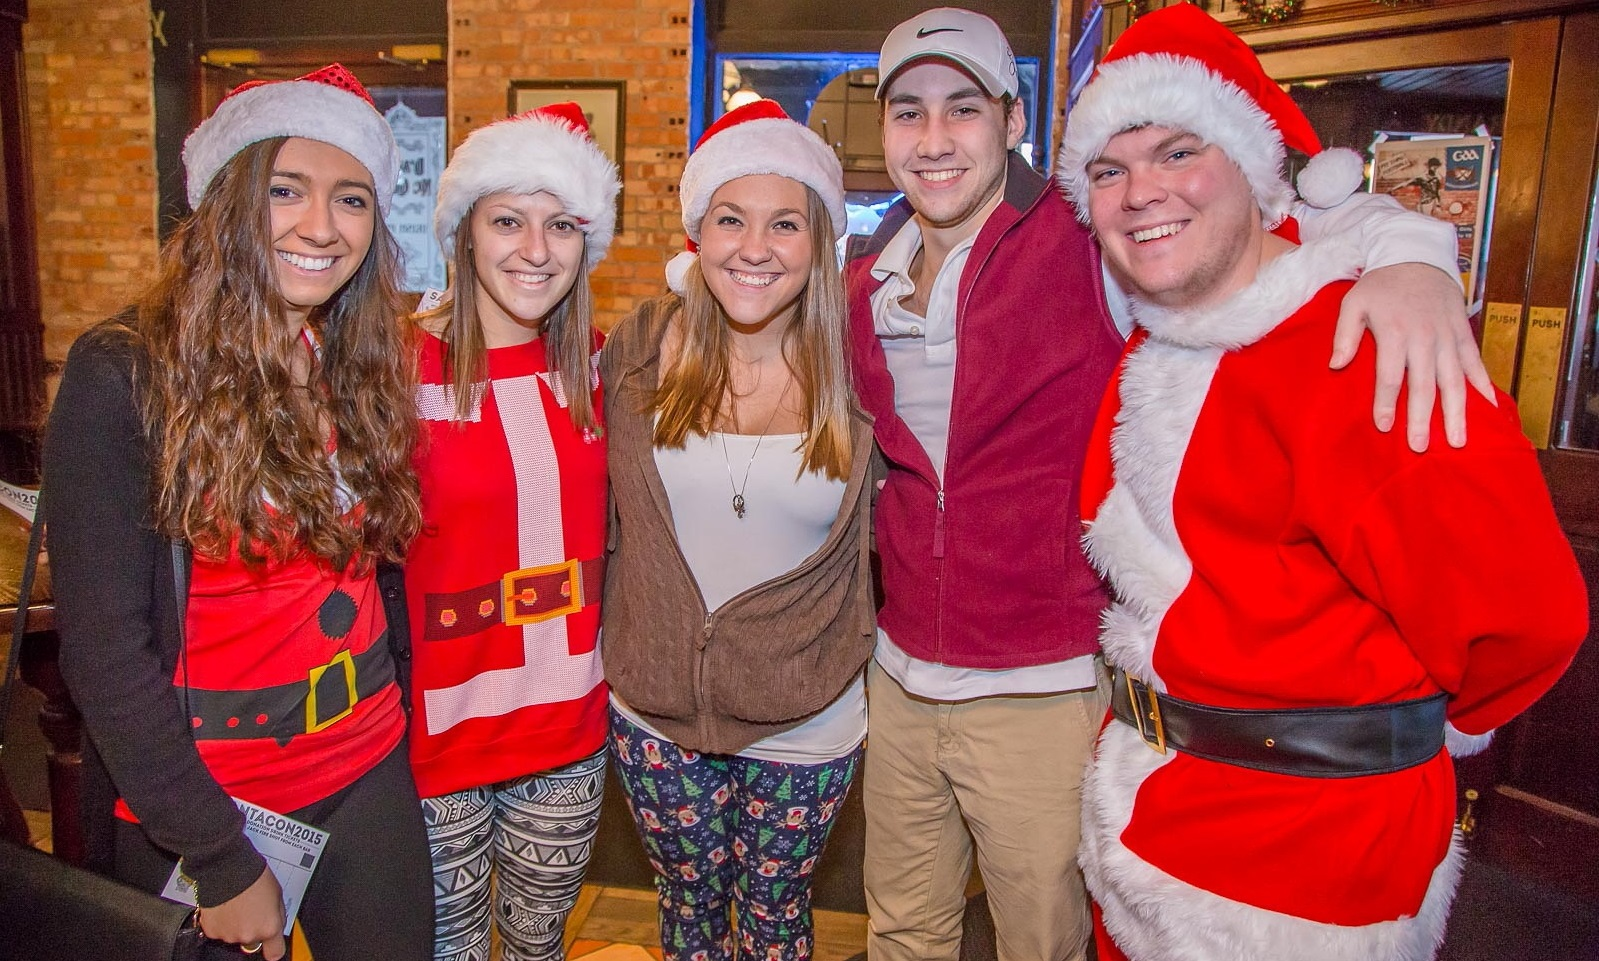 Smiles at the 2015 SantaCon Buffalo event on Chippewa Street. (Don Nieman/Special to The News)